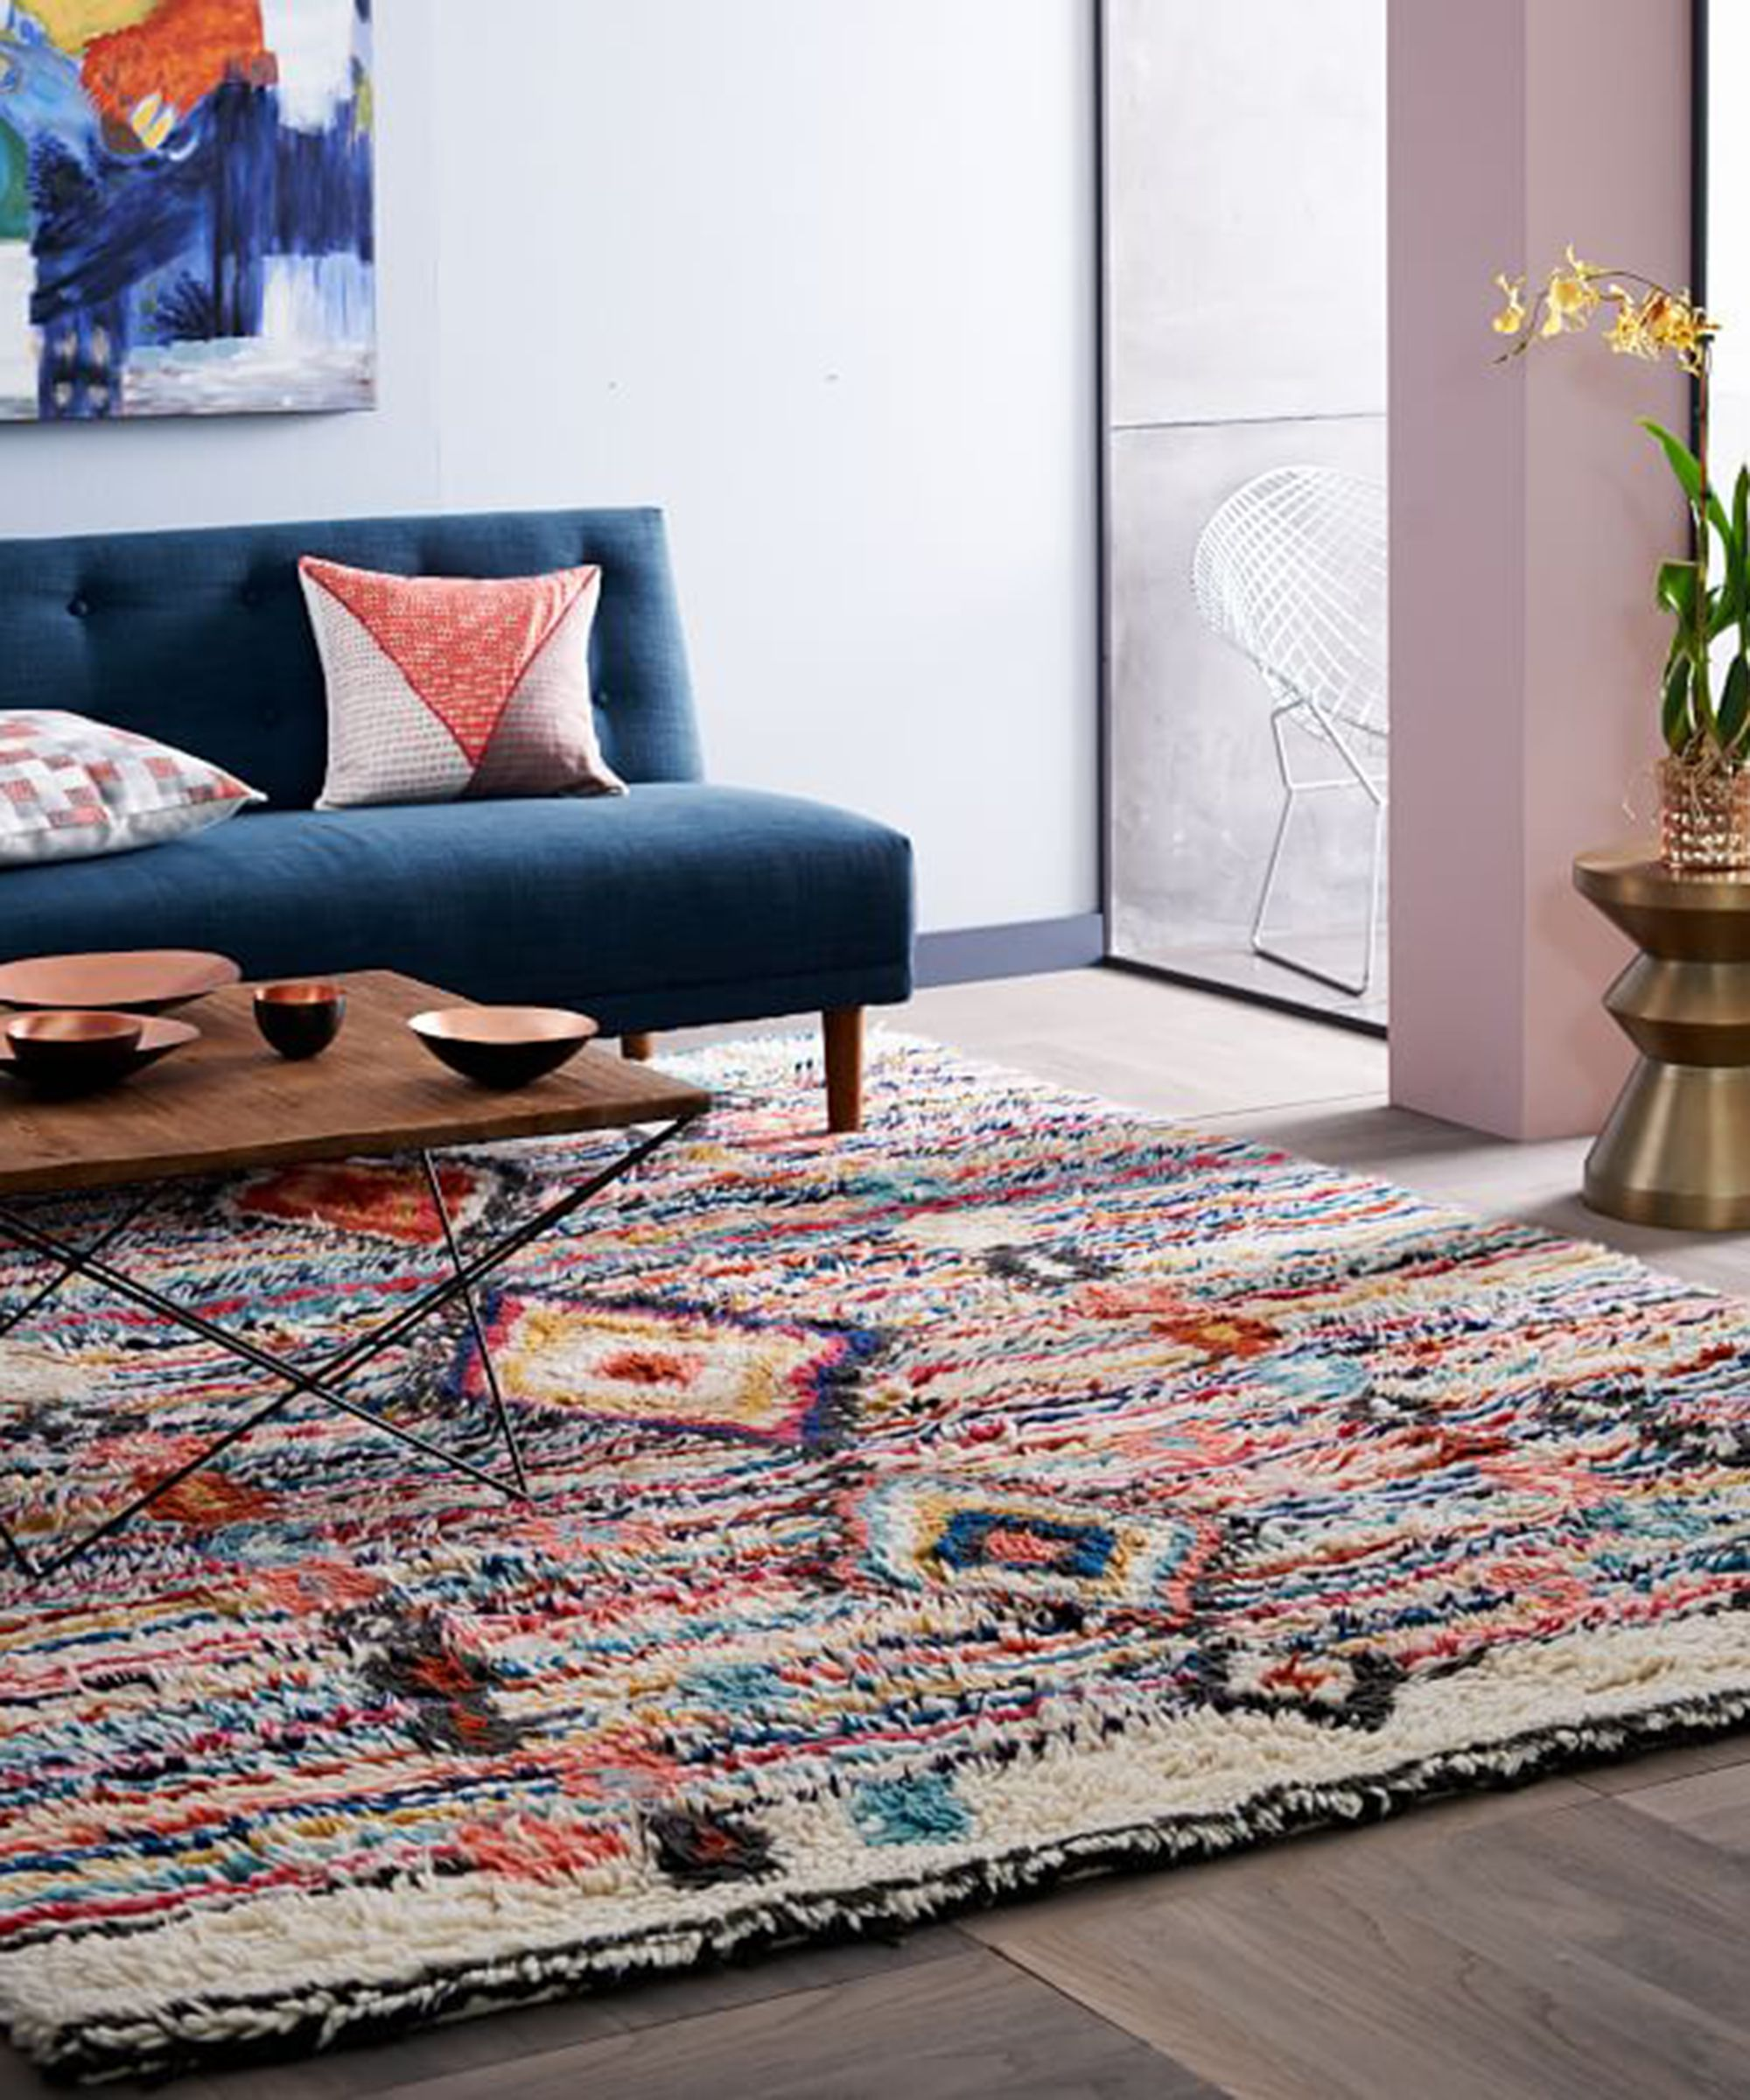 inexpensive rugs style on a budget: 10 sources for good, cheap rugs | apartment therapy SYXUBZA